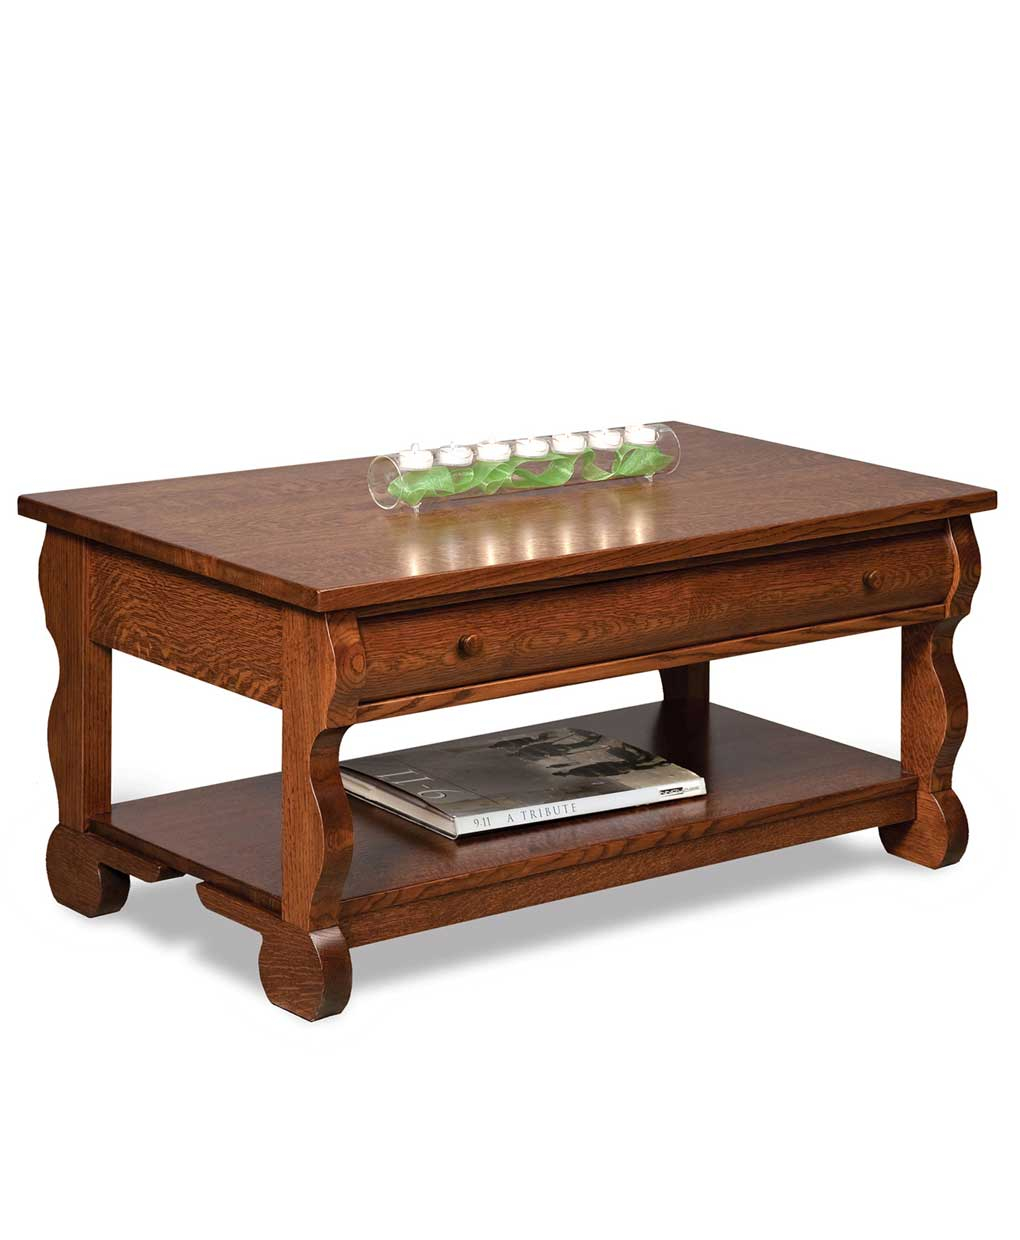 Letterpress Tray Coffee Table: Old Classic Sleigh Open Coffee Table With Drawer